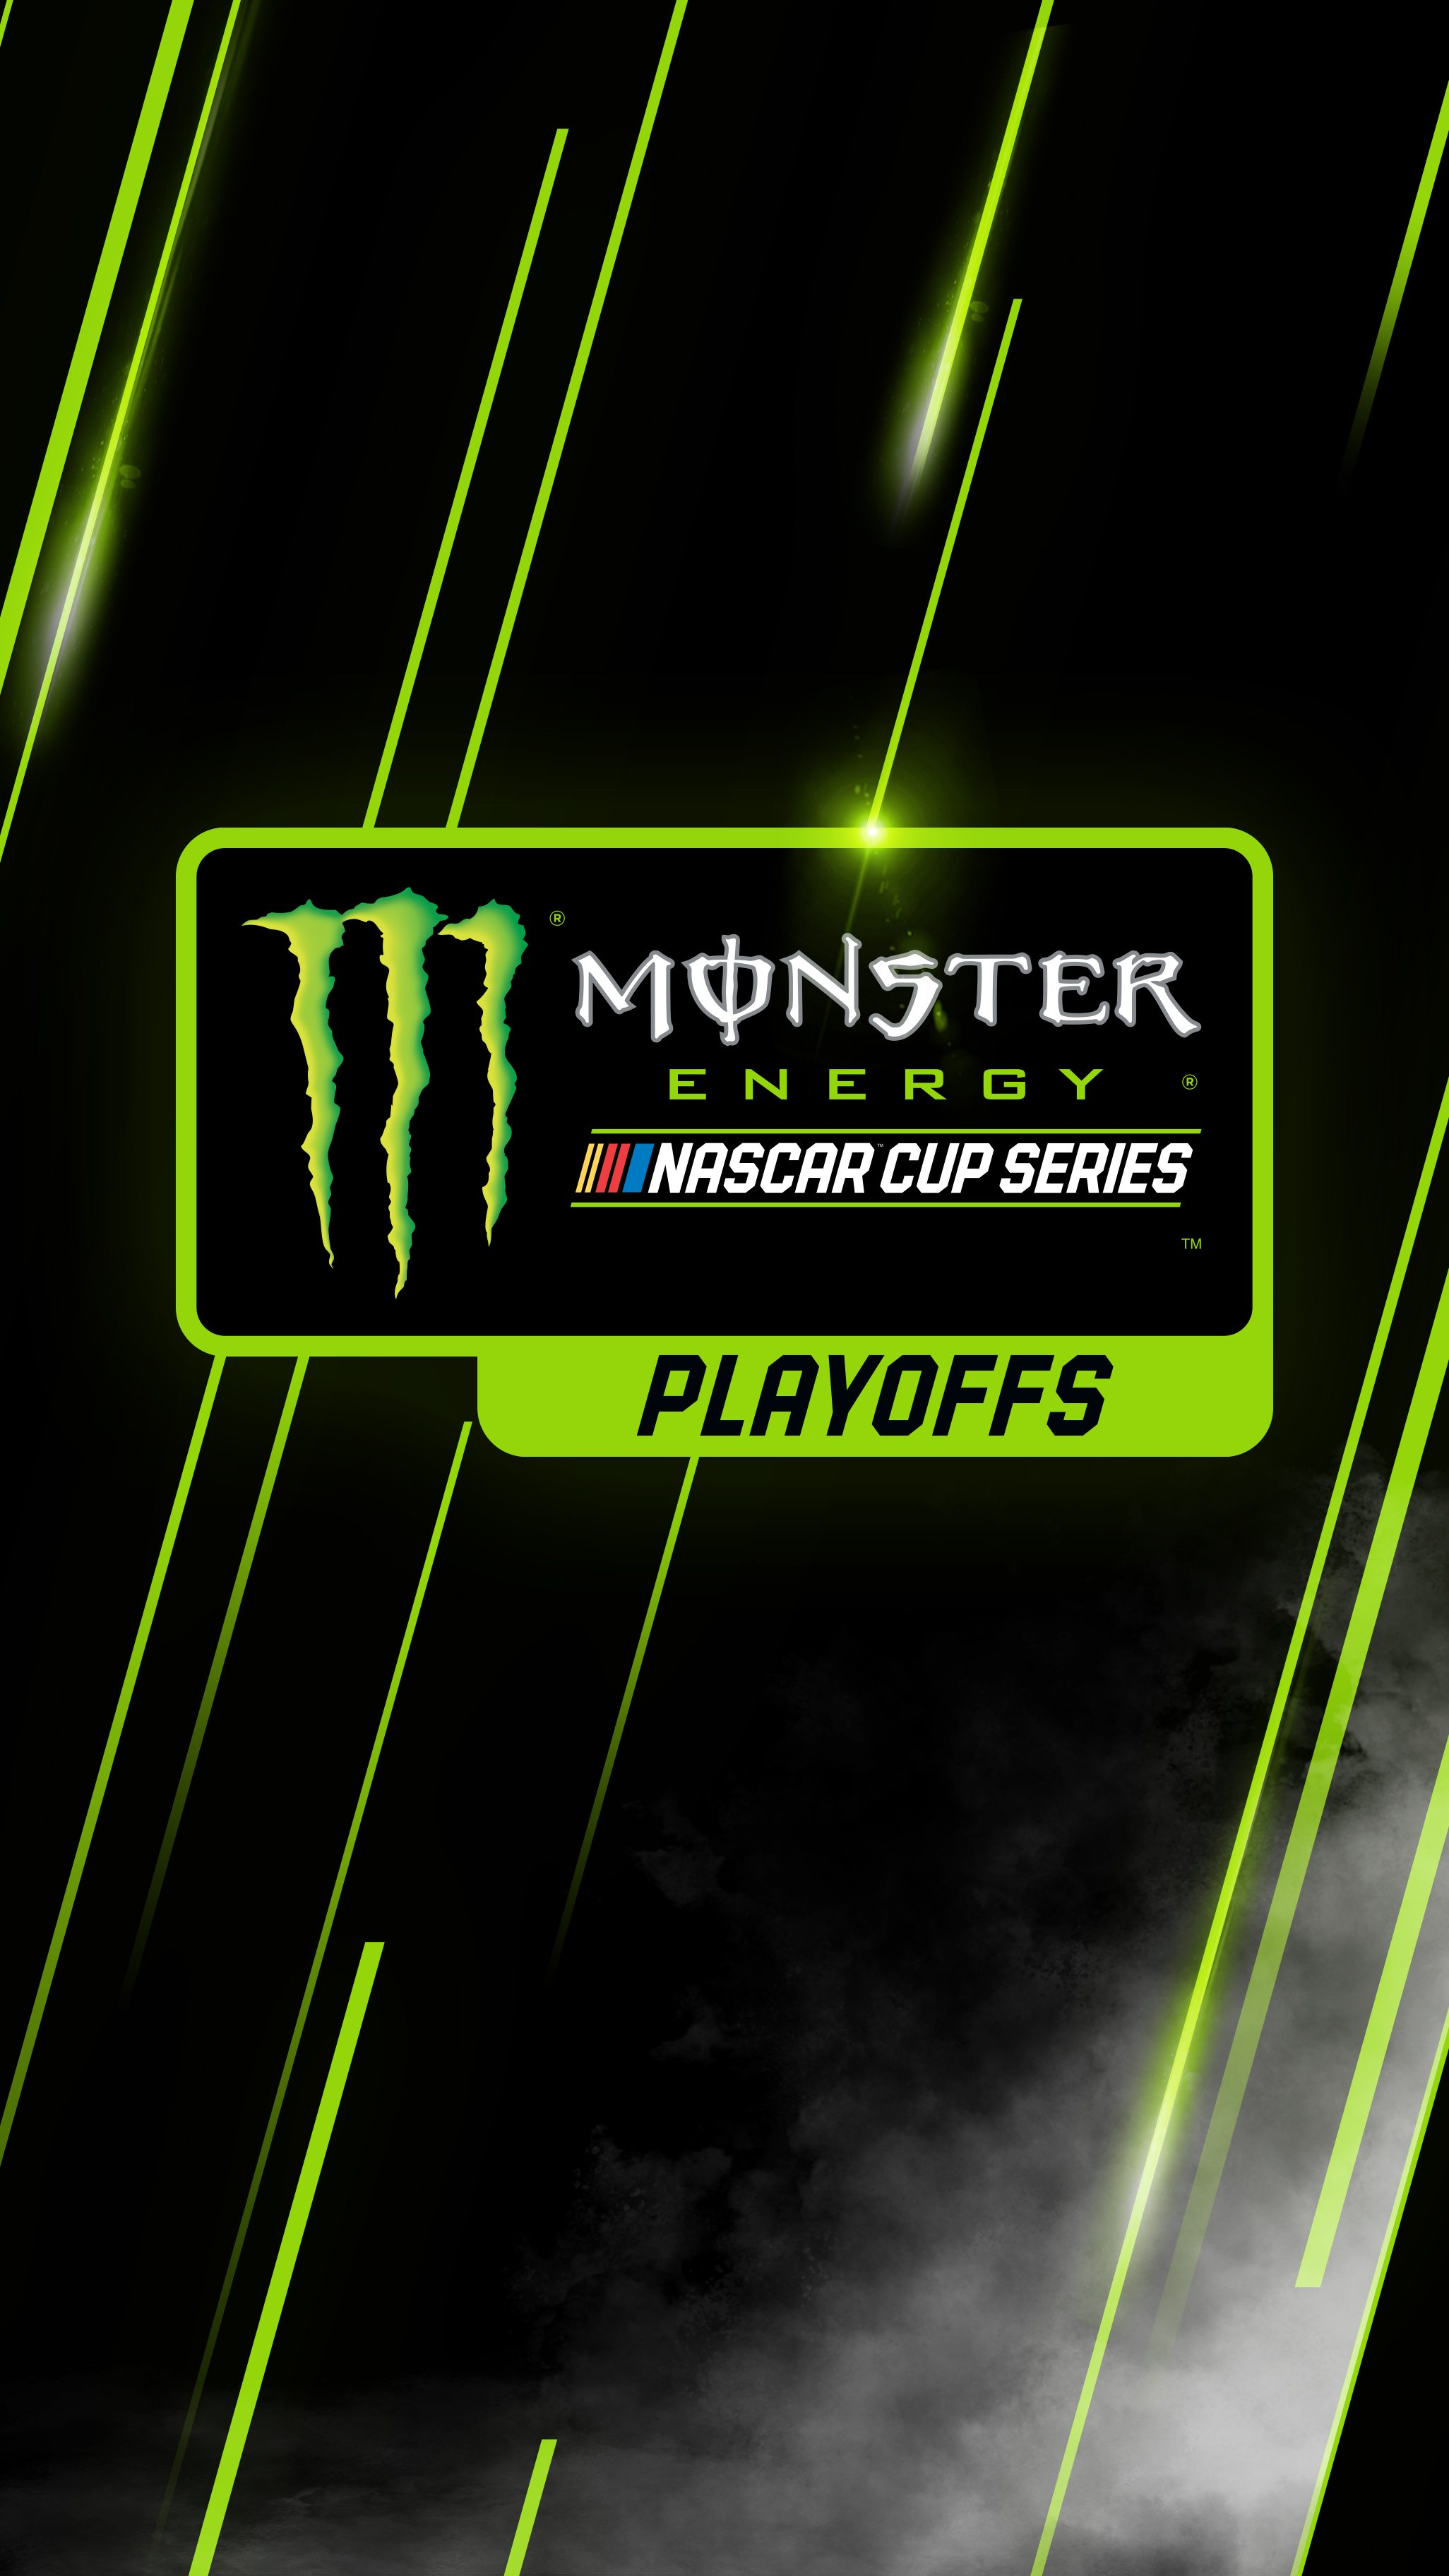 Nascar playoffs wallpapers home screens available now monster energy nascar cup series playoffs voltagebd Images